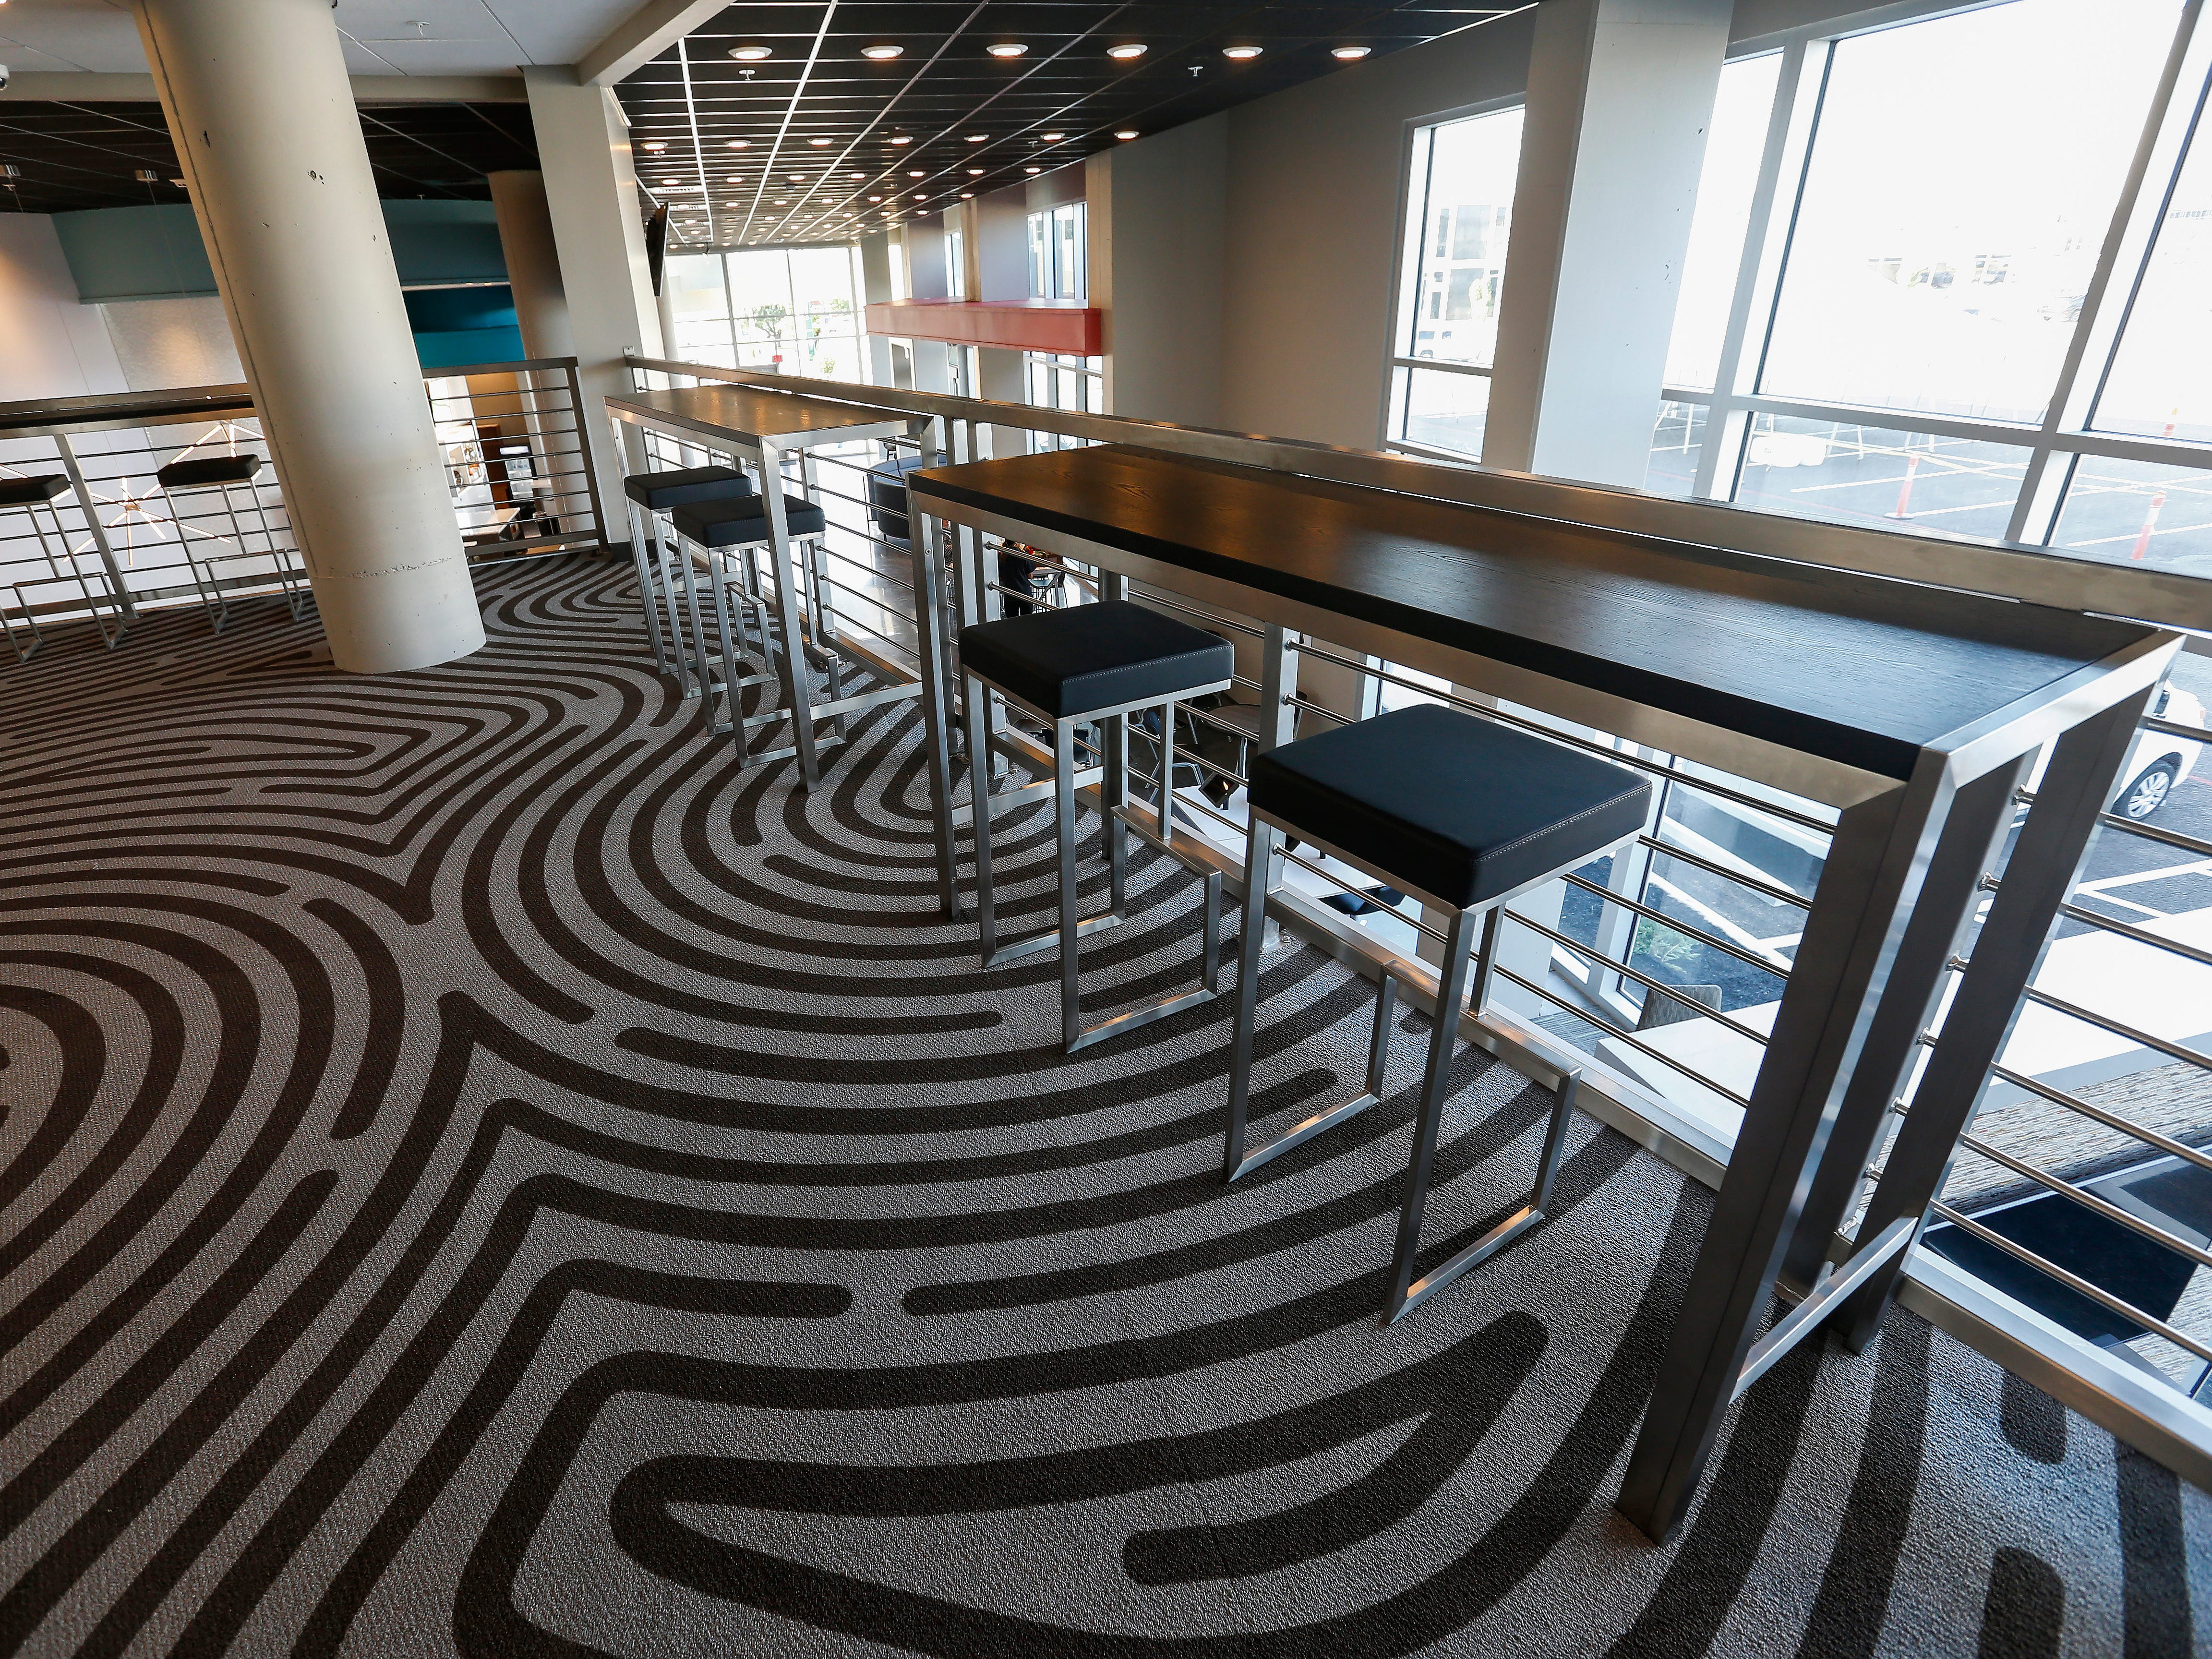 The Zen Zone is located on the mezzanine level at the new Vib Hotel, located at 1845 E Sunshine St. The hotel will hold its grand opening on Friday, Aug. 10, 2018.